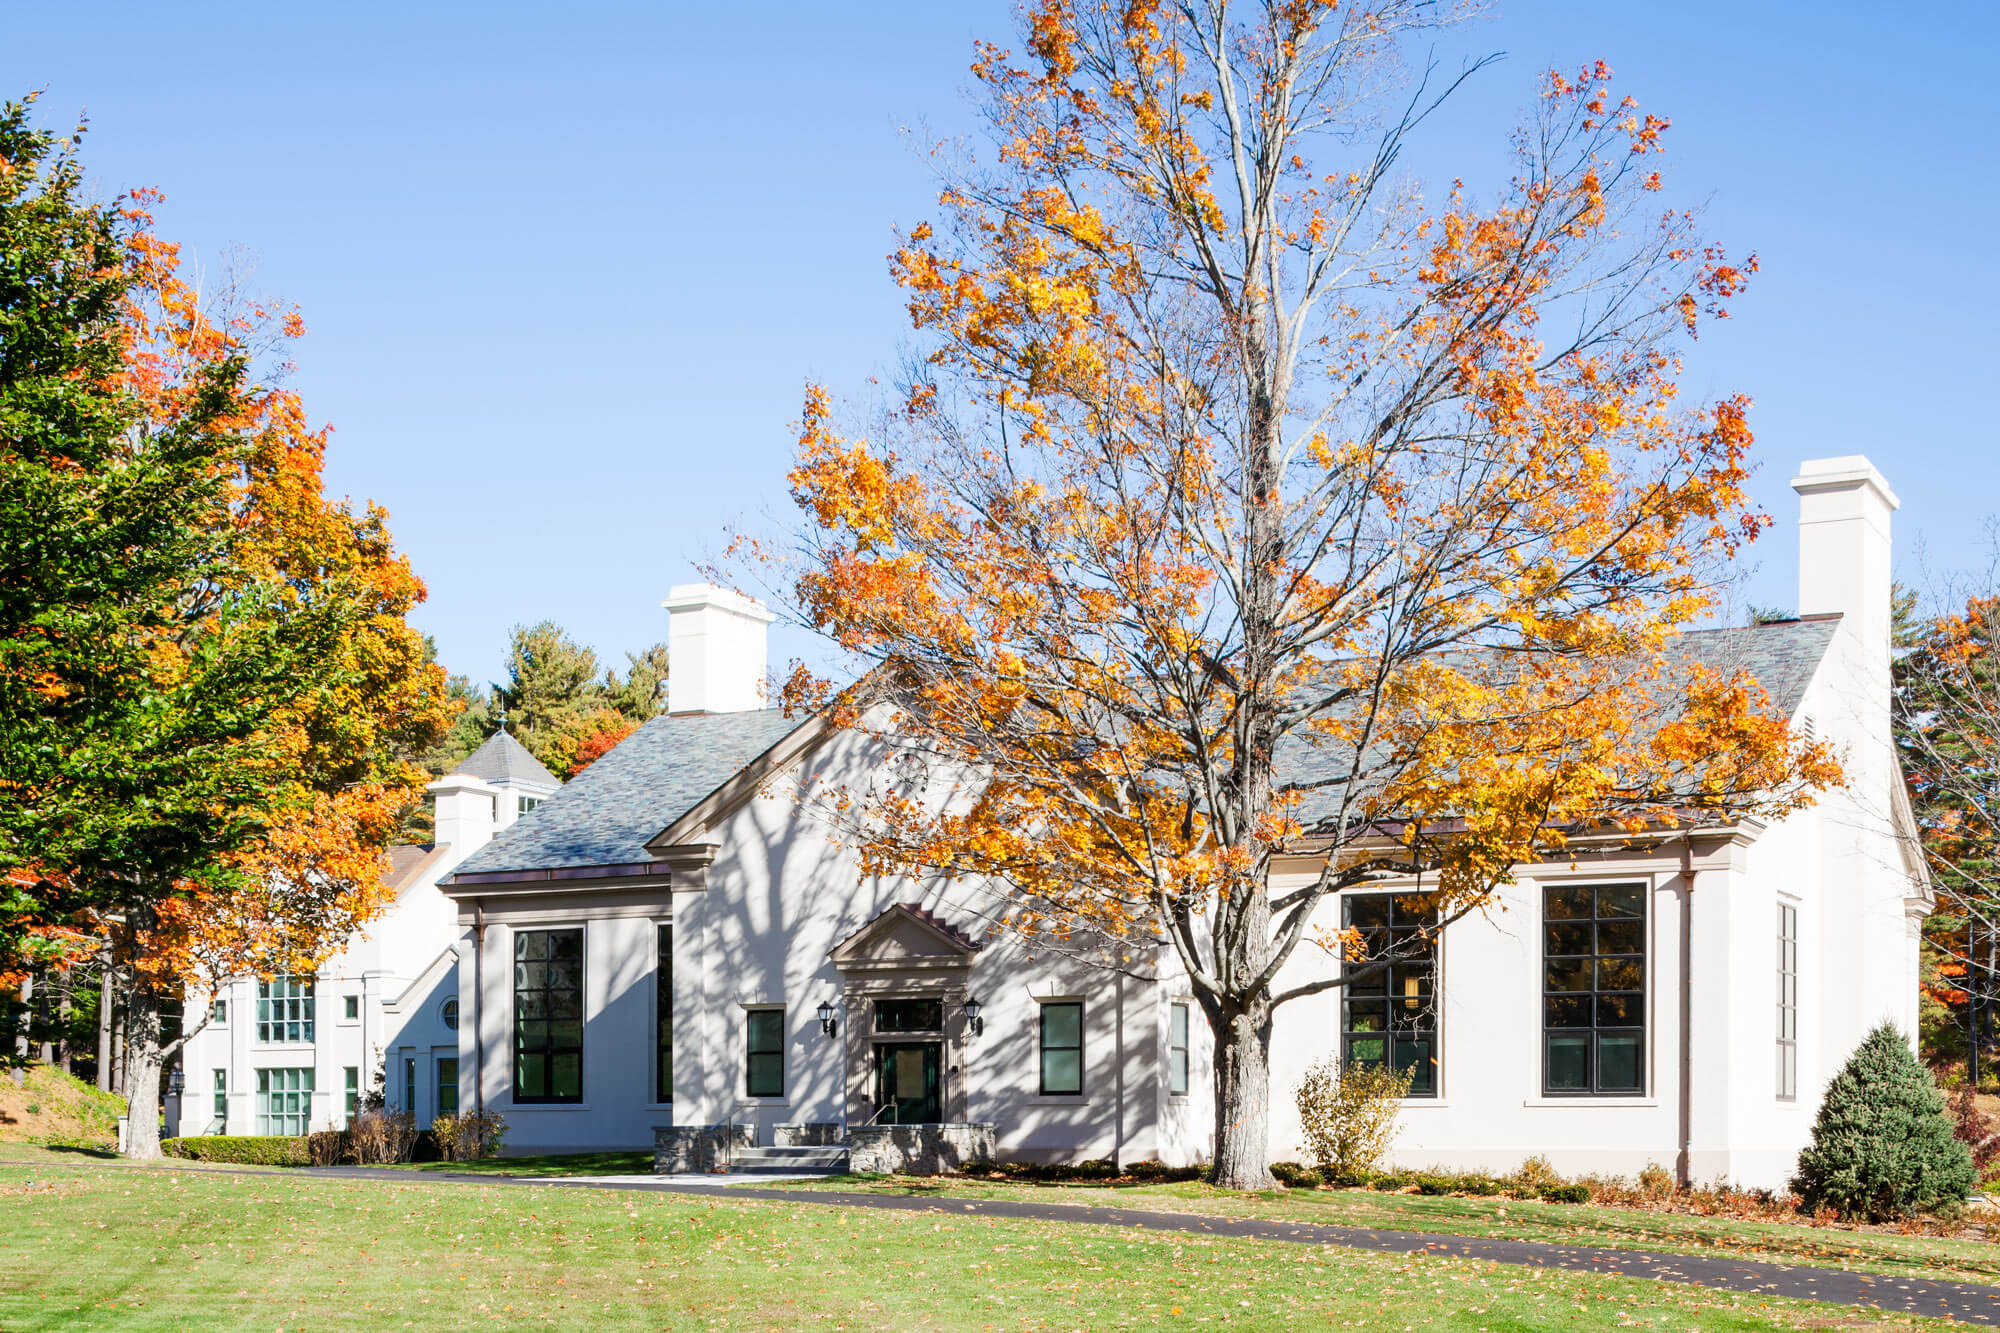 Exterior view of Geier Library at the Berkshire School, showing autumn leaves and blue sky